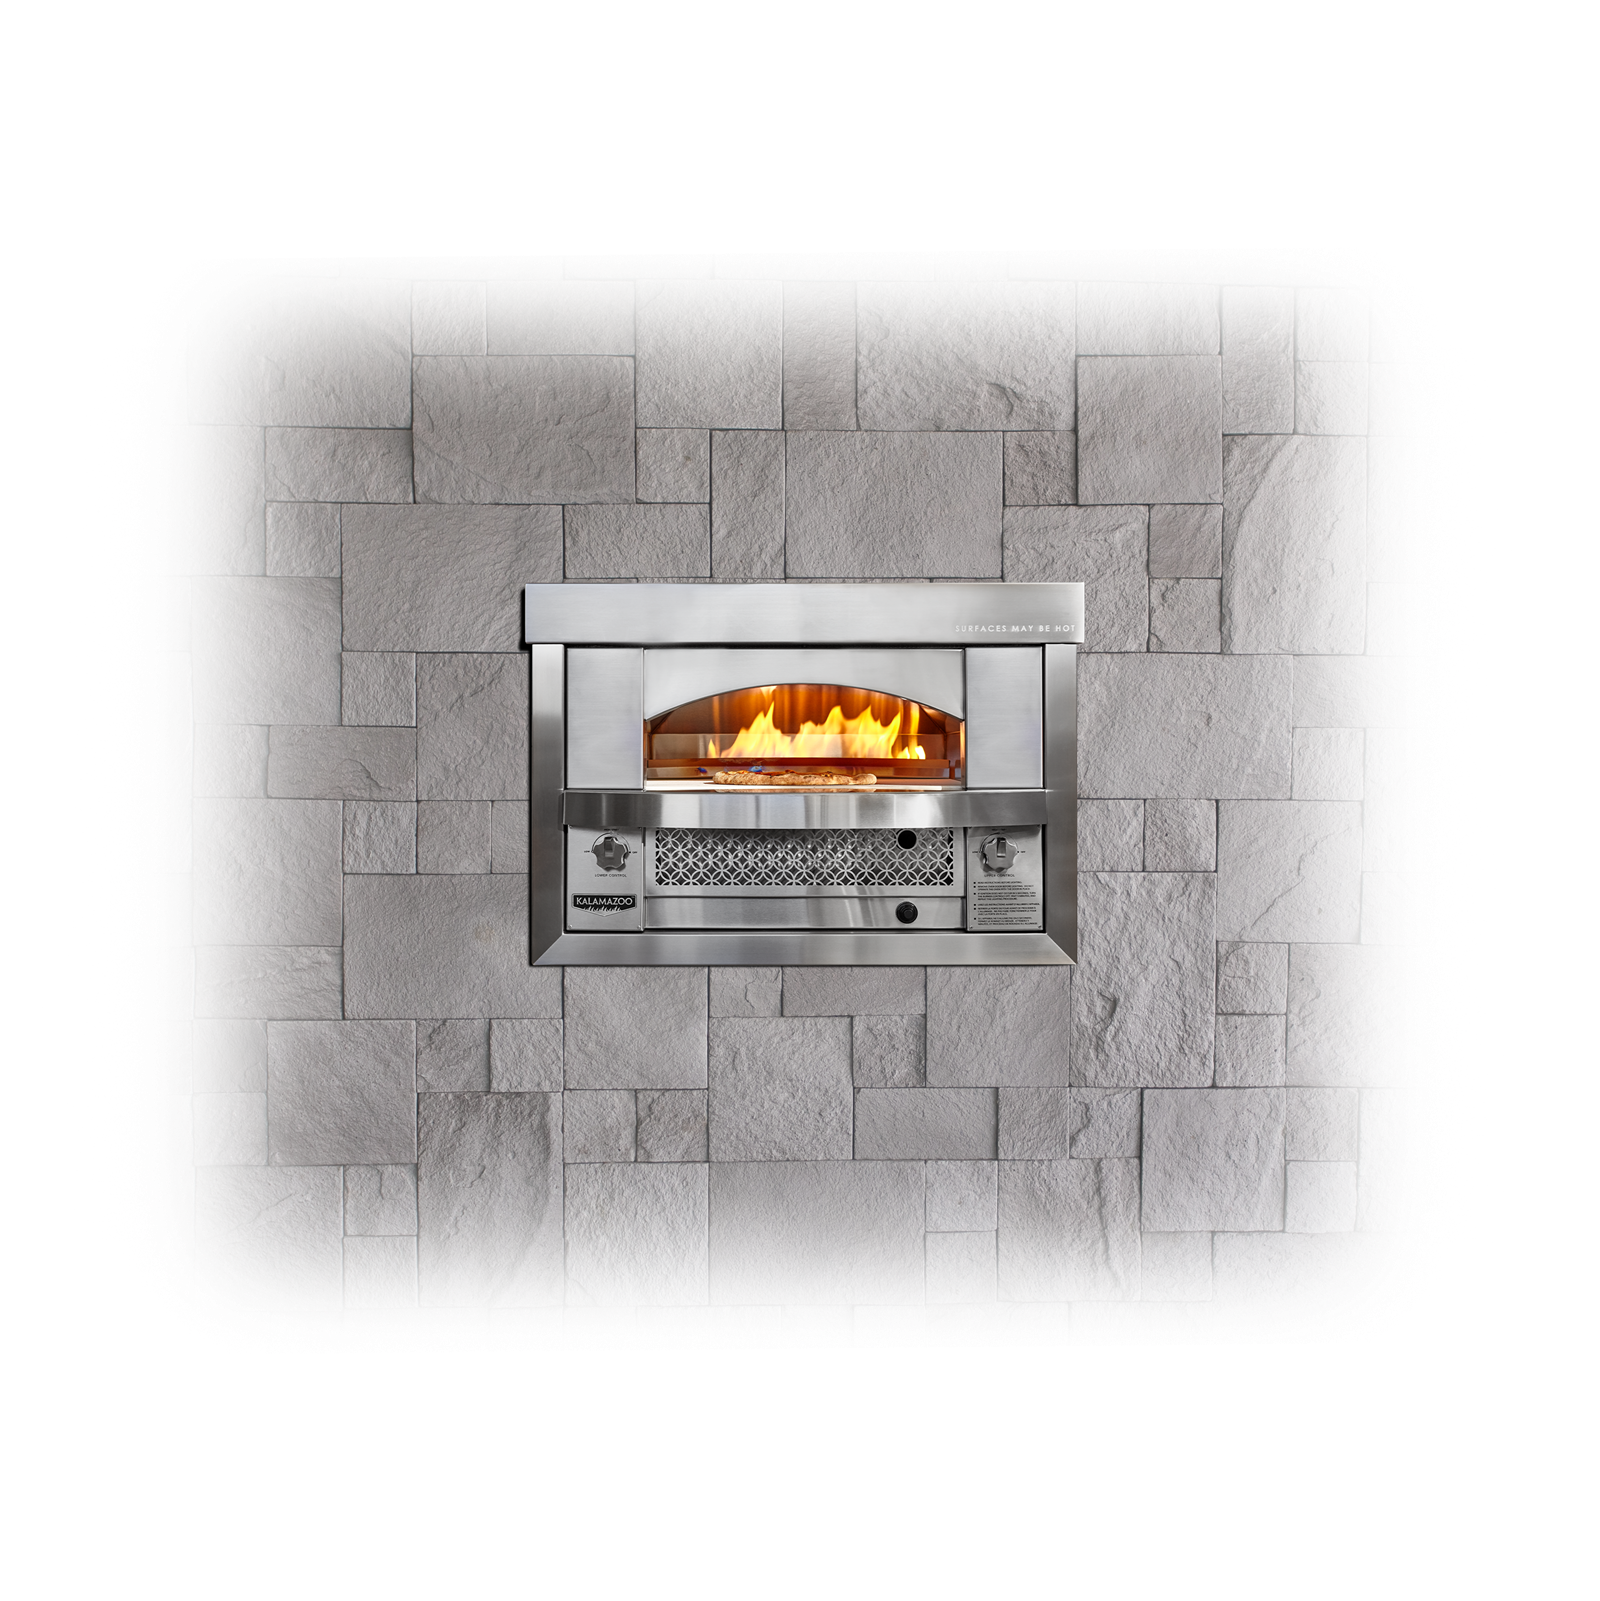 Built-in Artisan Fire Pizza Oven Image